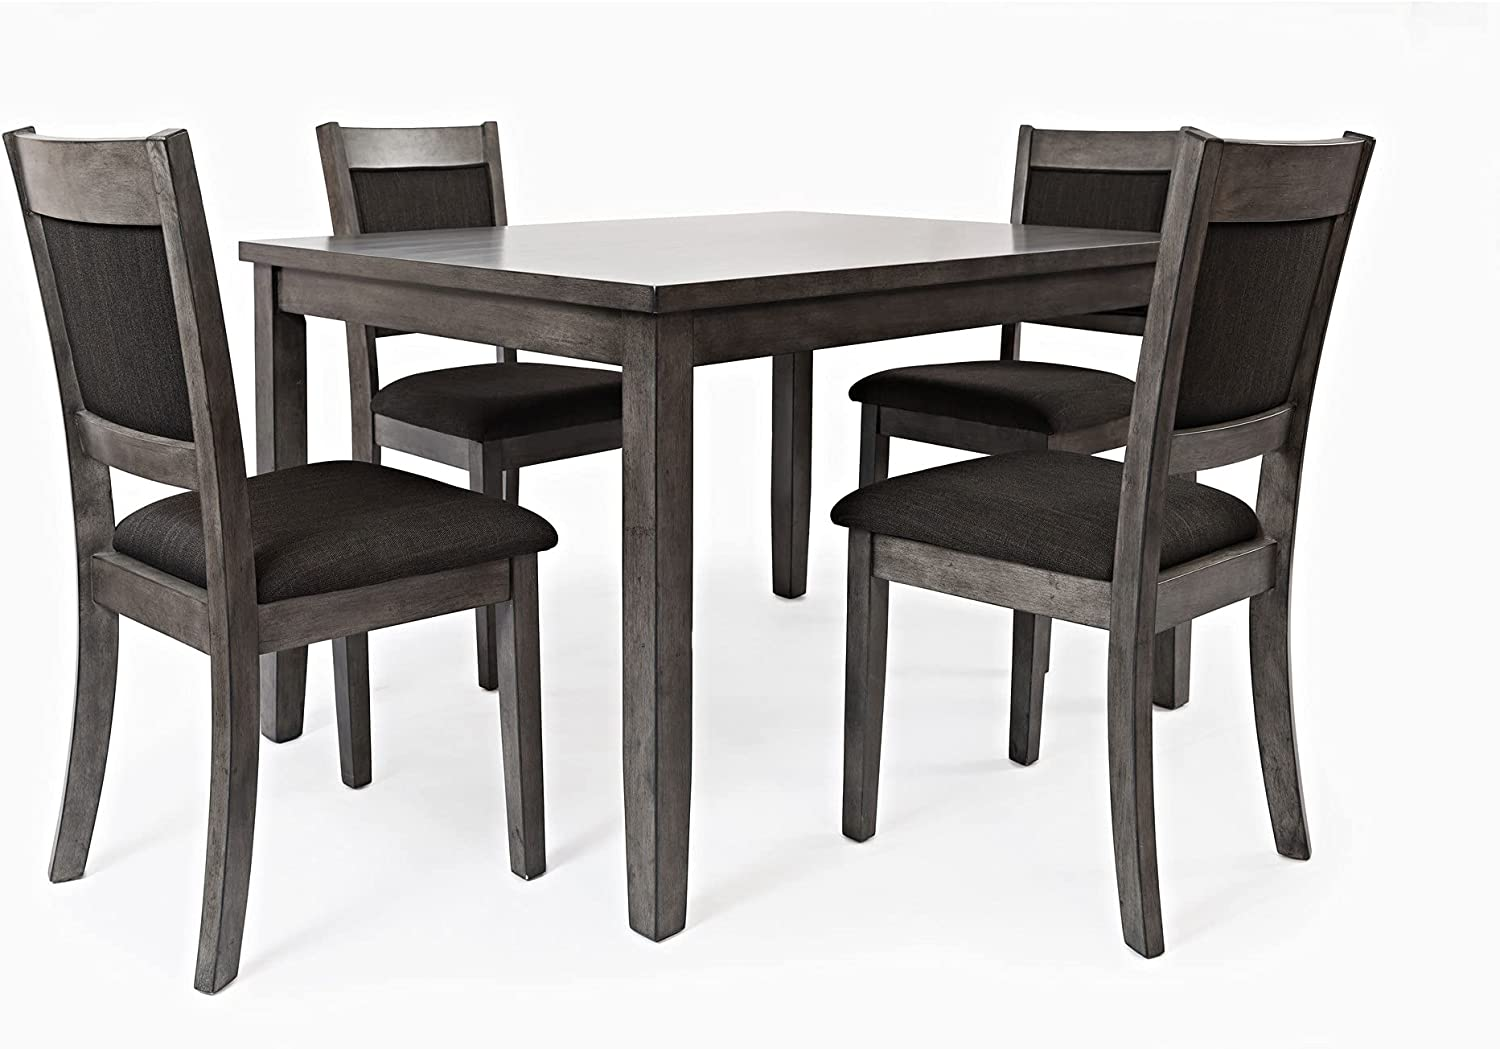 Benjara 2021 spring and summer Ranking TOP19 new 5 Piece Dining Set Chairs with Padded Gray